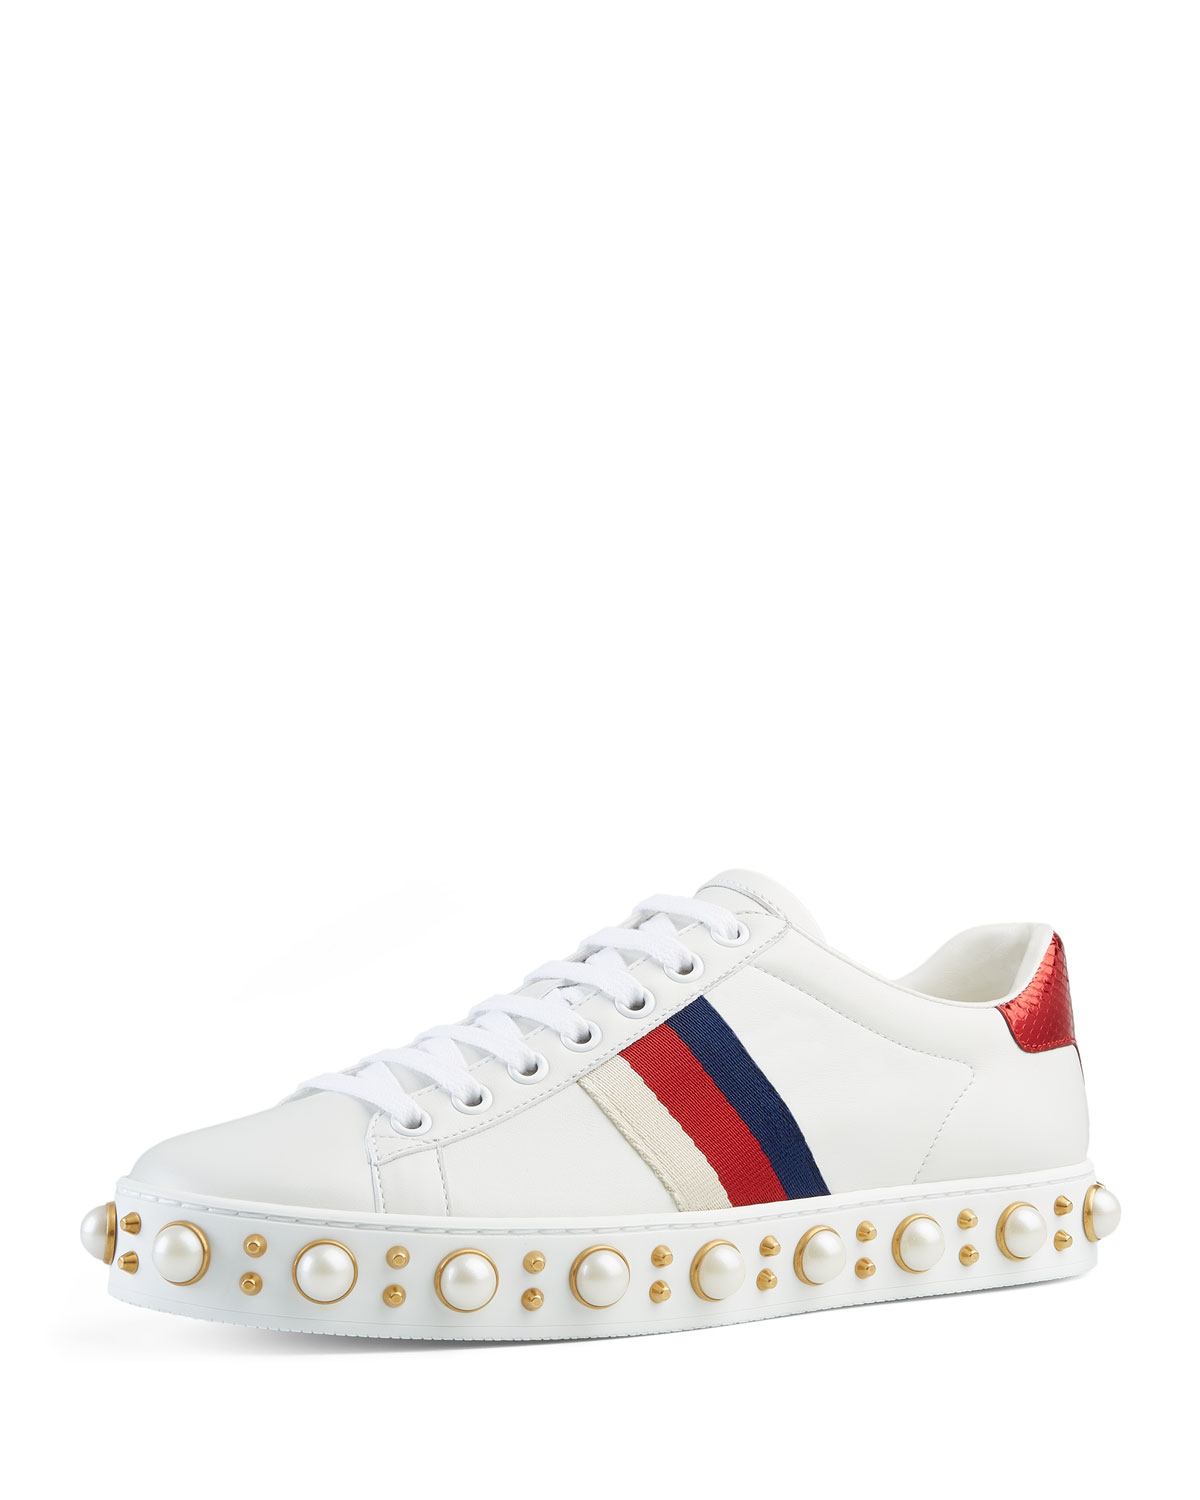 8bfb15ae4c0 Gucci Flat New Ace Dames Sneakers – Wit/Rood/Blauw